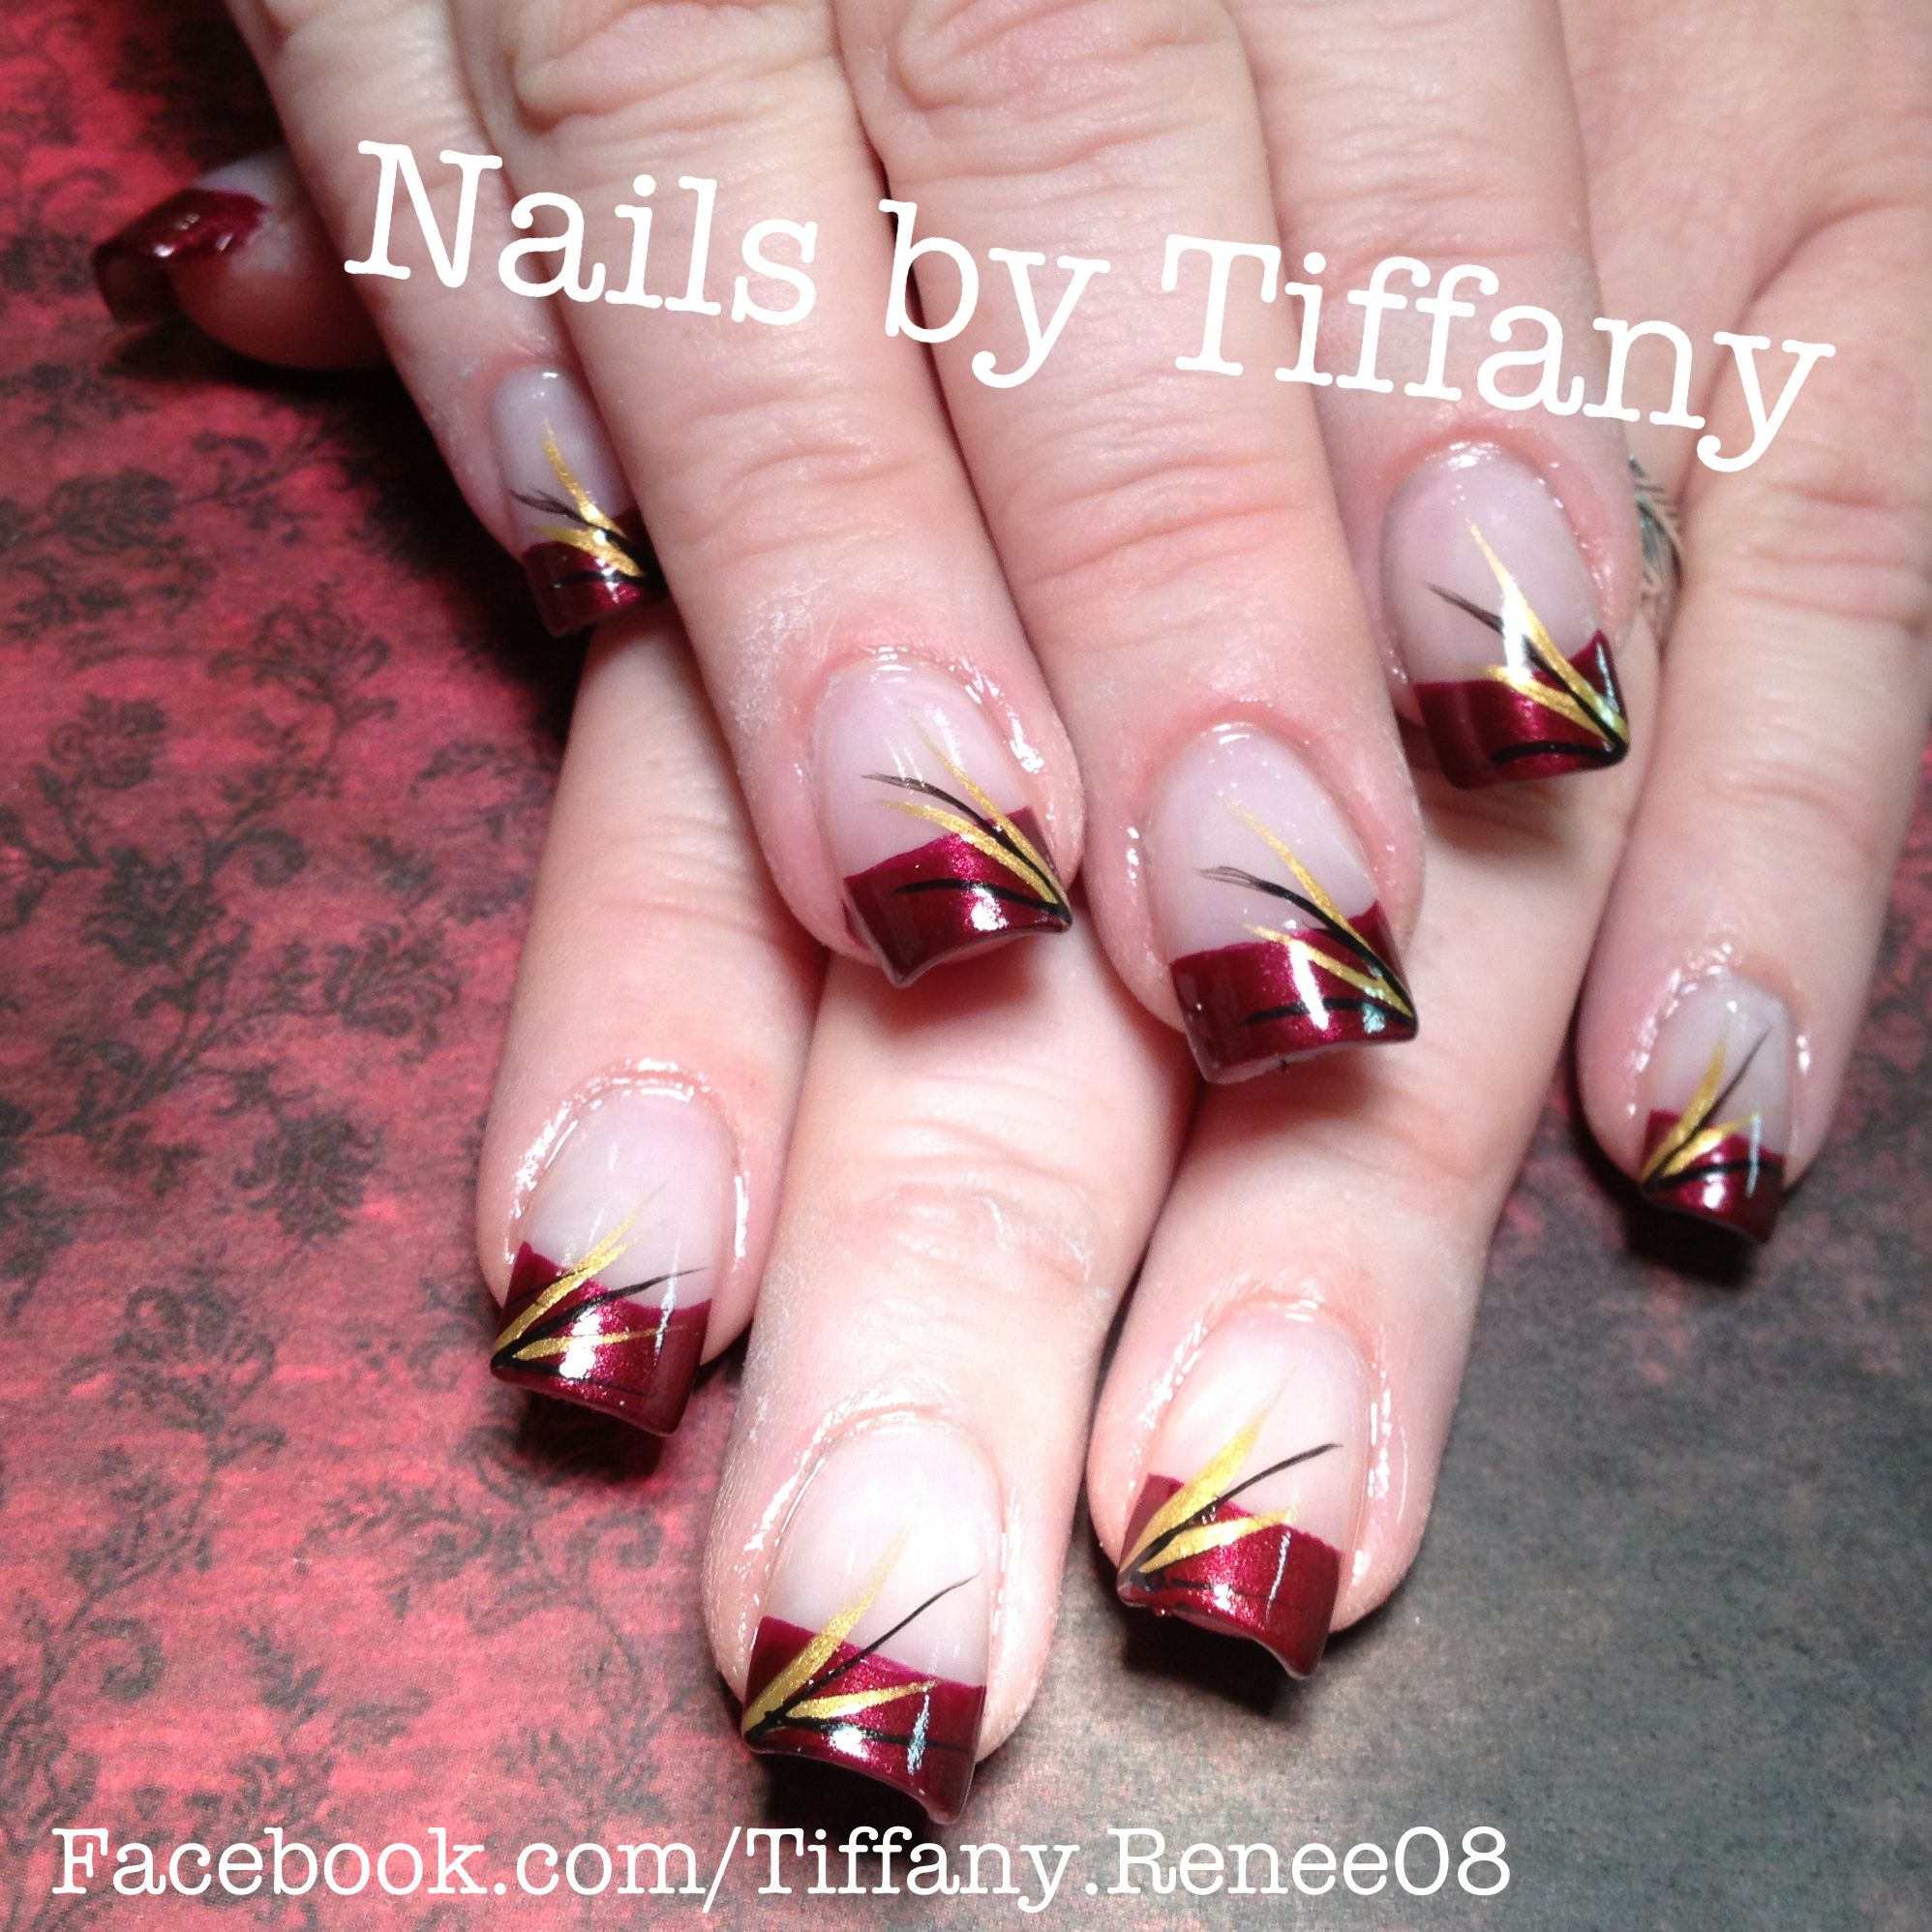 Pin by Rosanne DeCaprio on Nails | Pinterest